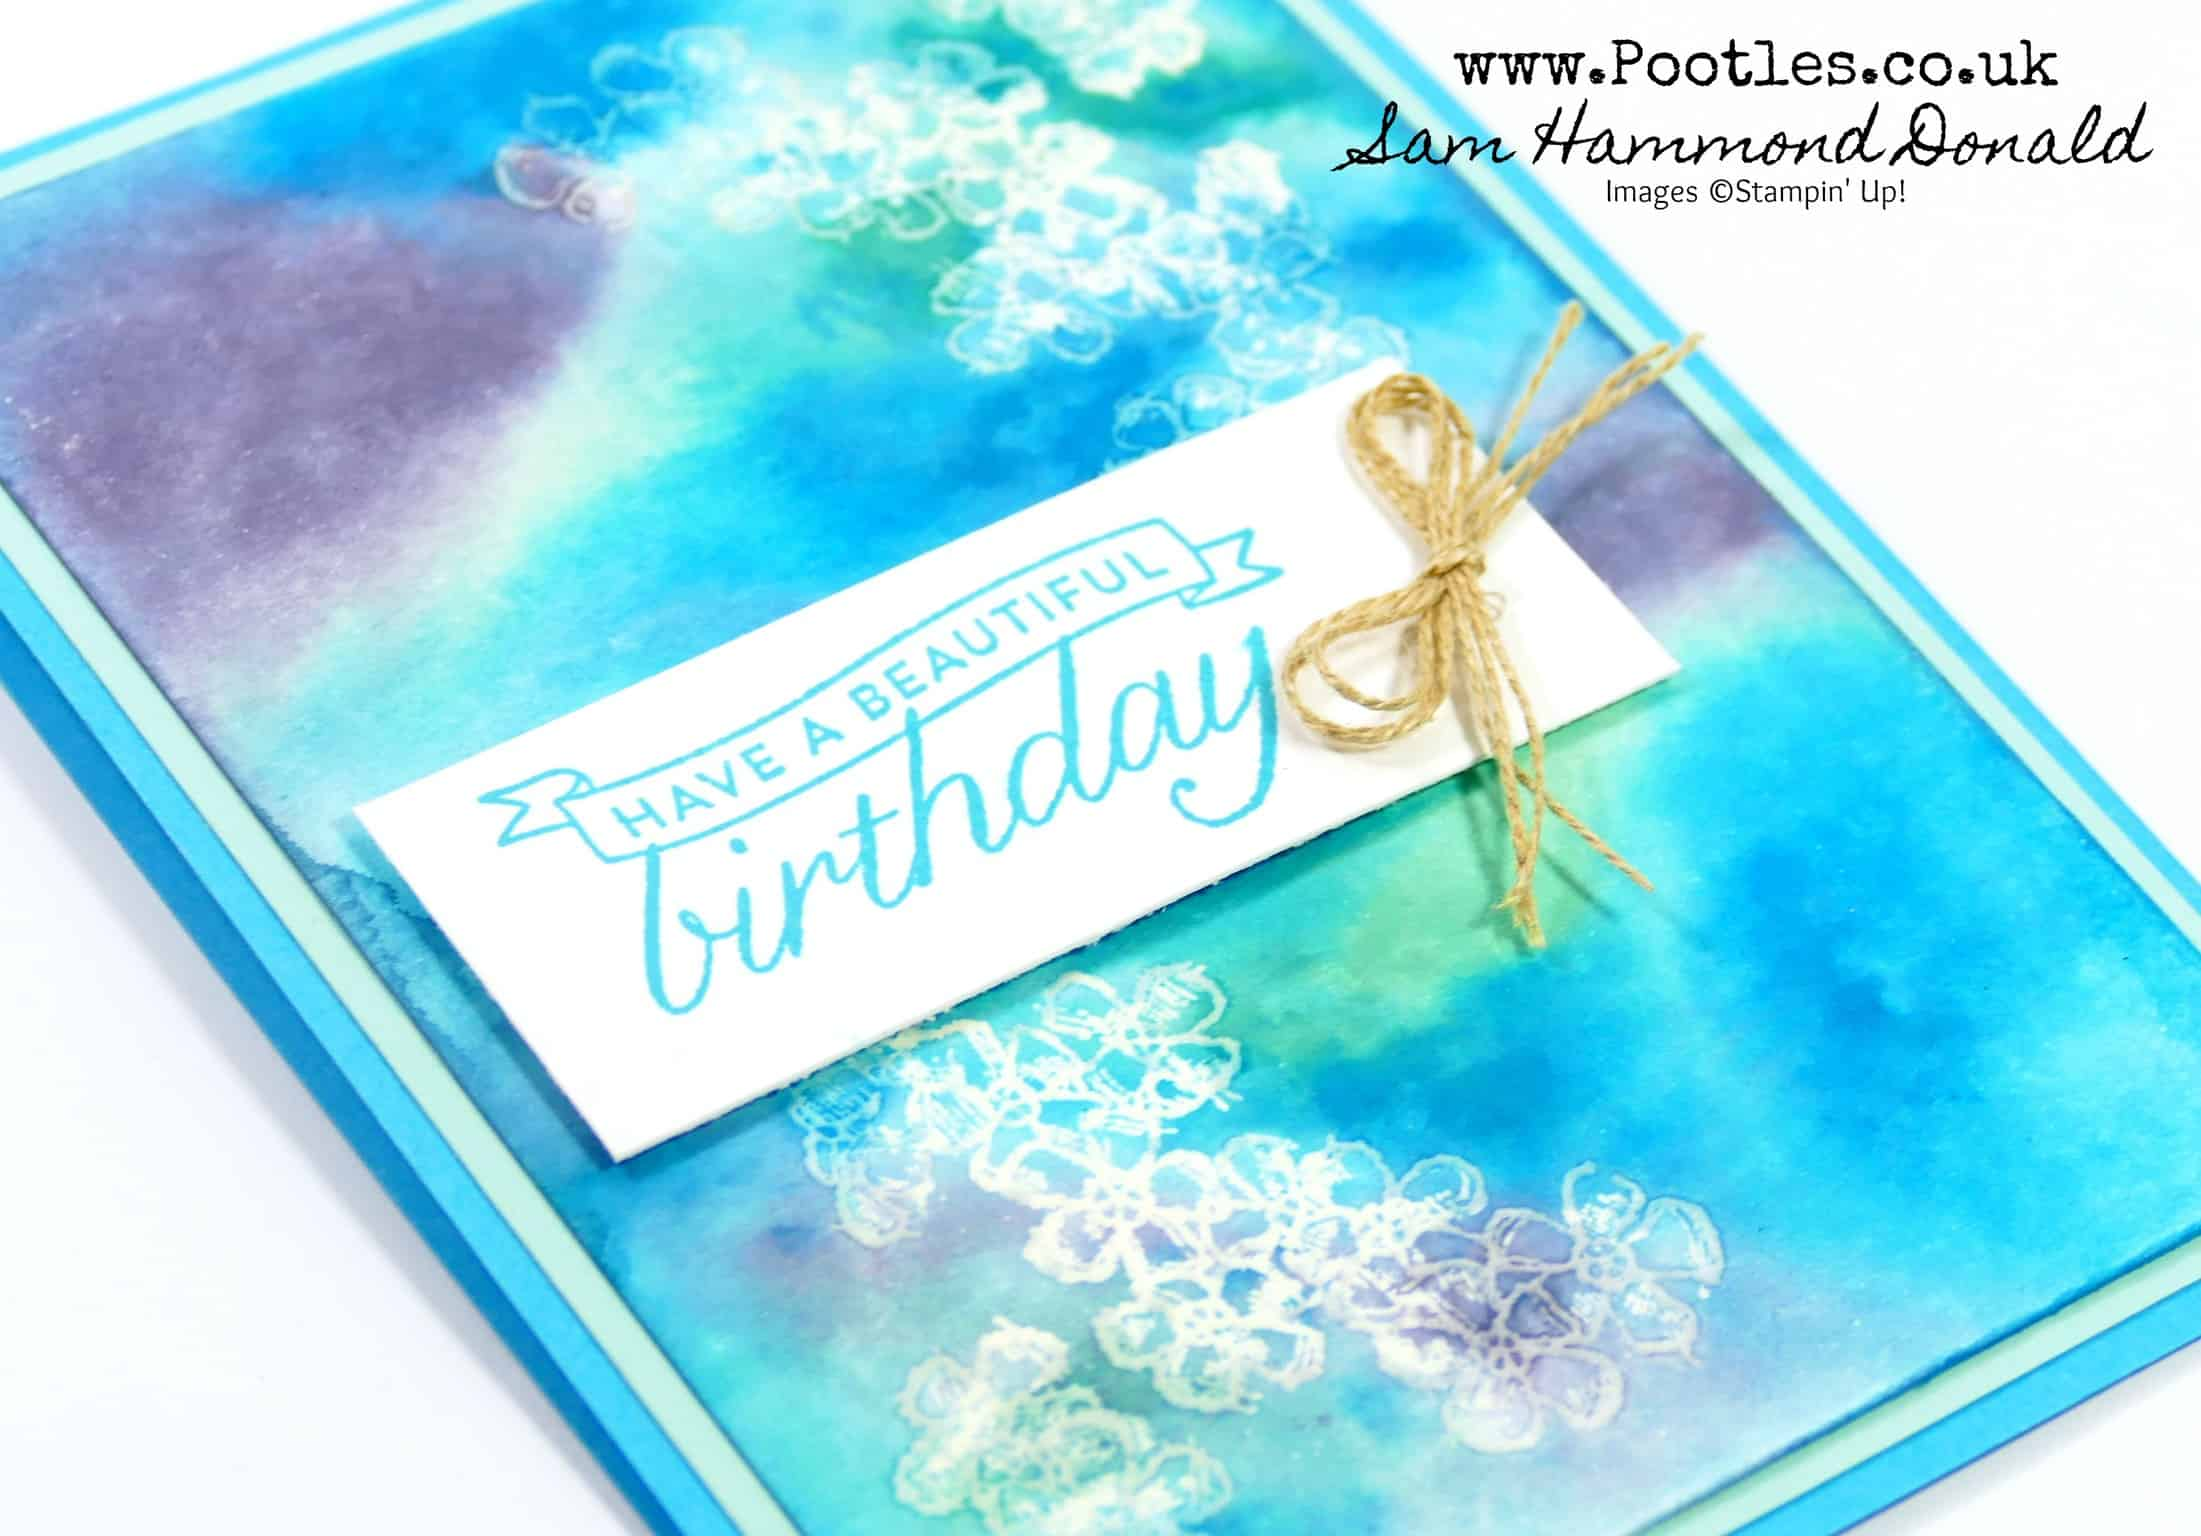 Watercolour Dripping with Stampin' Up! Reinkers